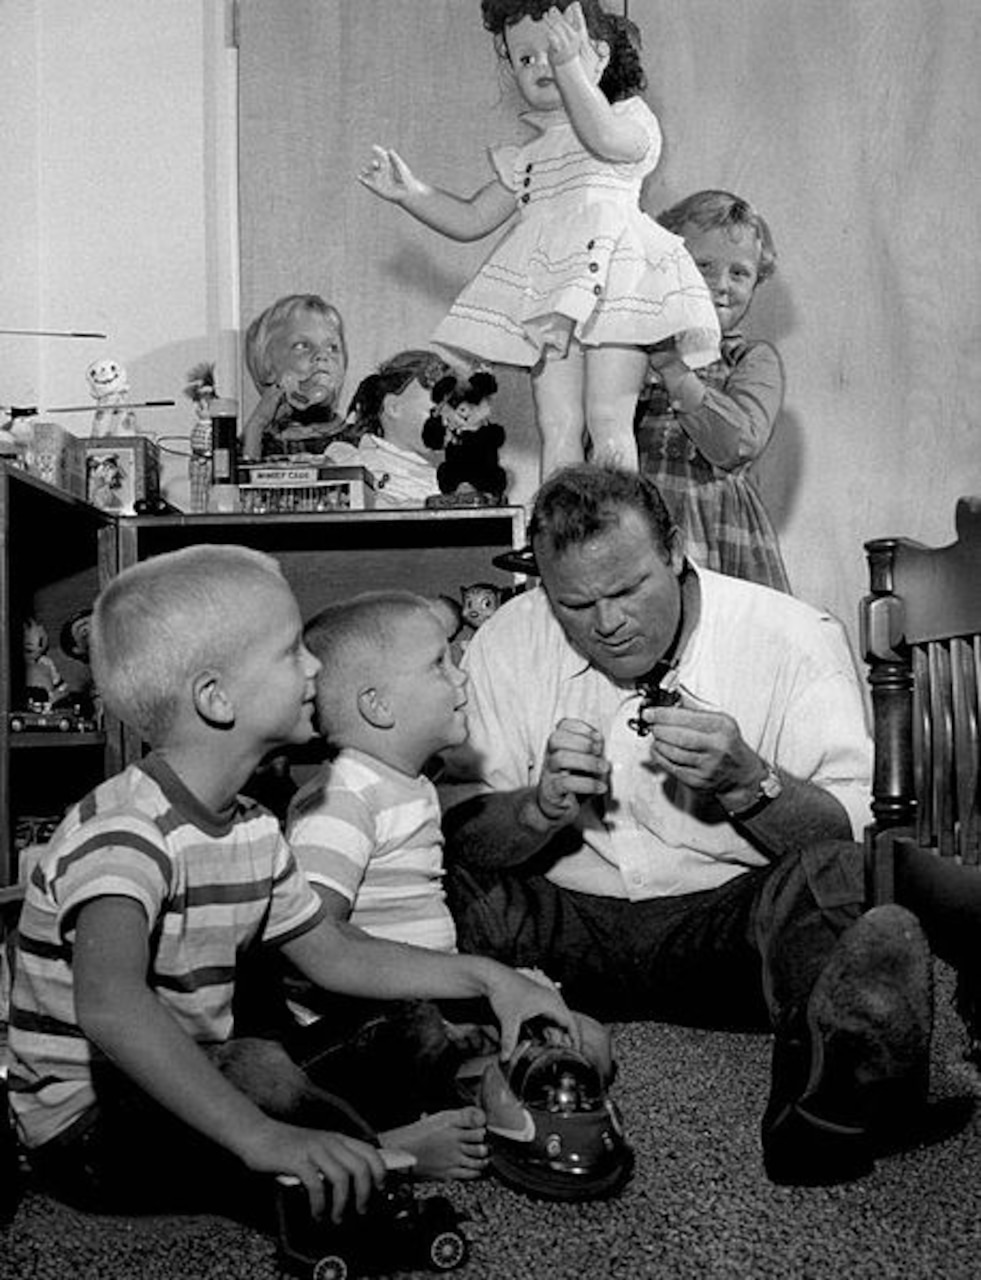 A man sits on the floor playing with two little boys as two little girls play with a large doll and other toys behind the man.